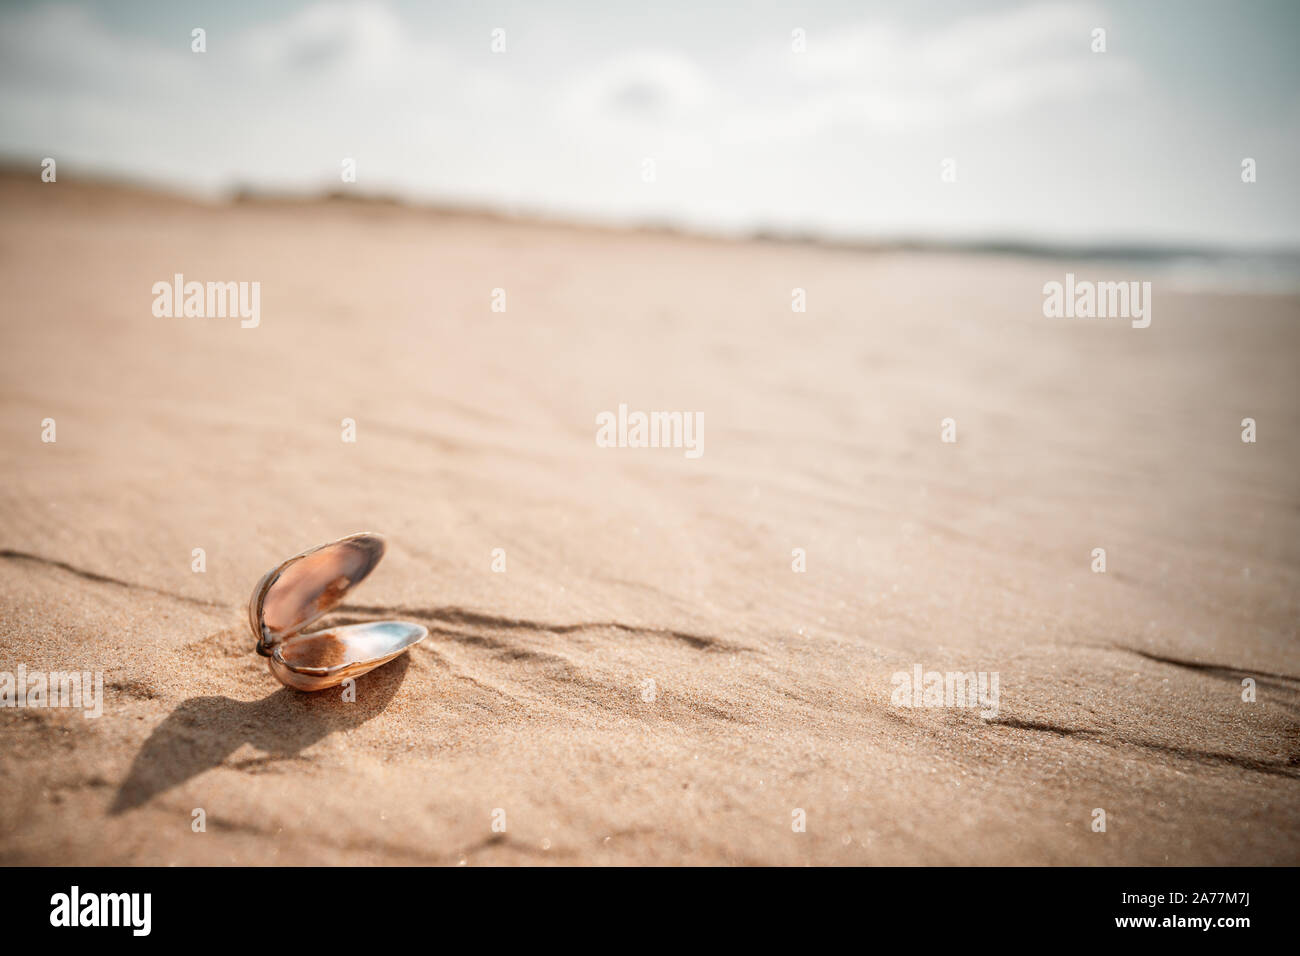 Shell on the sandy ground in the Desert Stock Photo